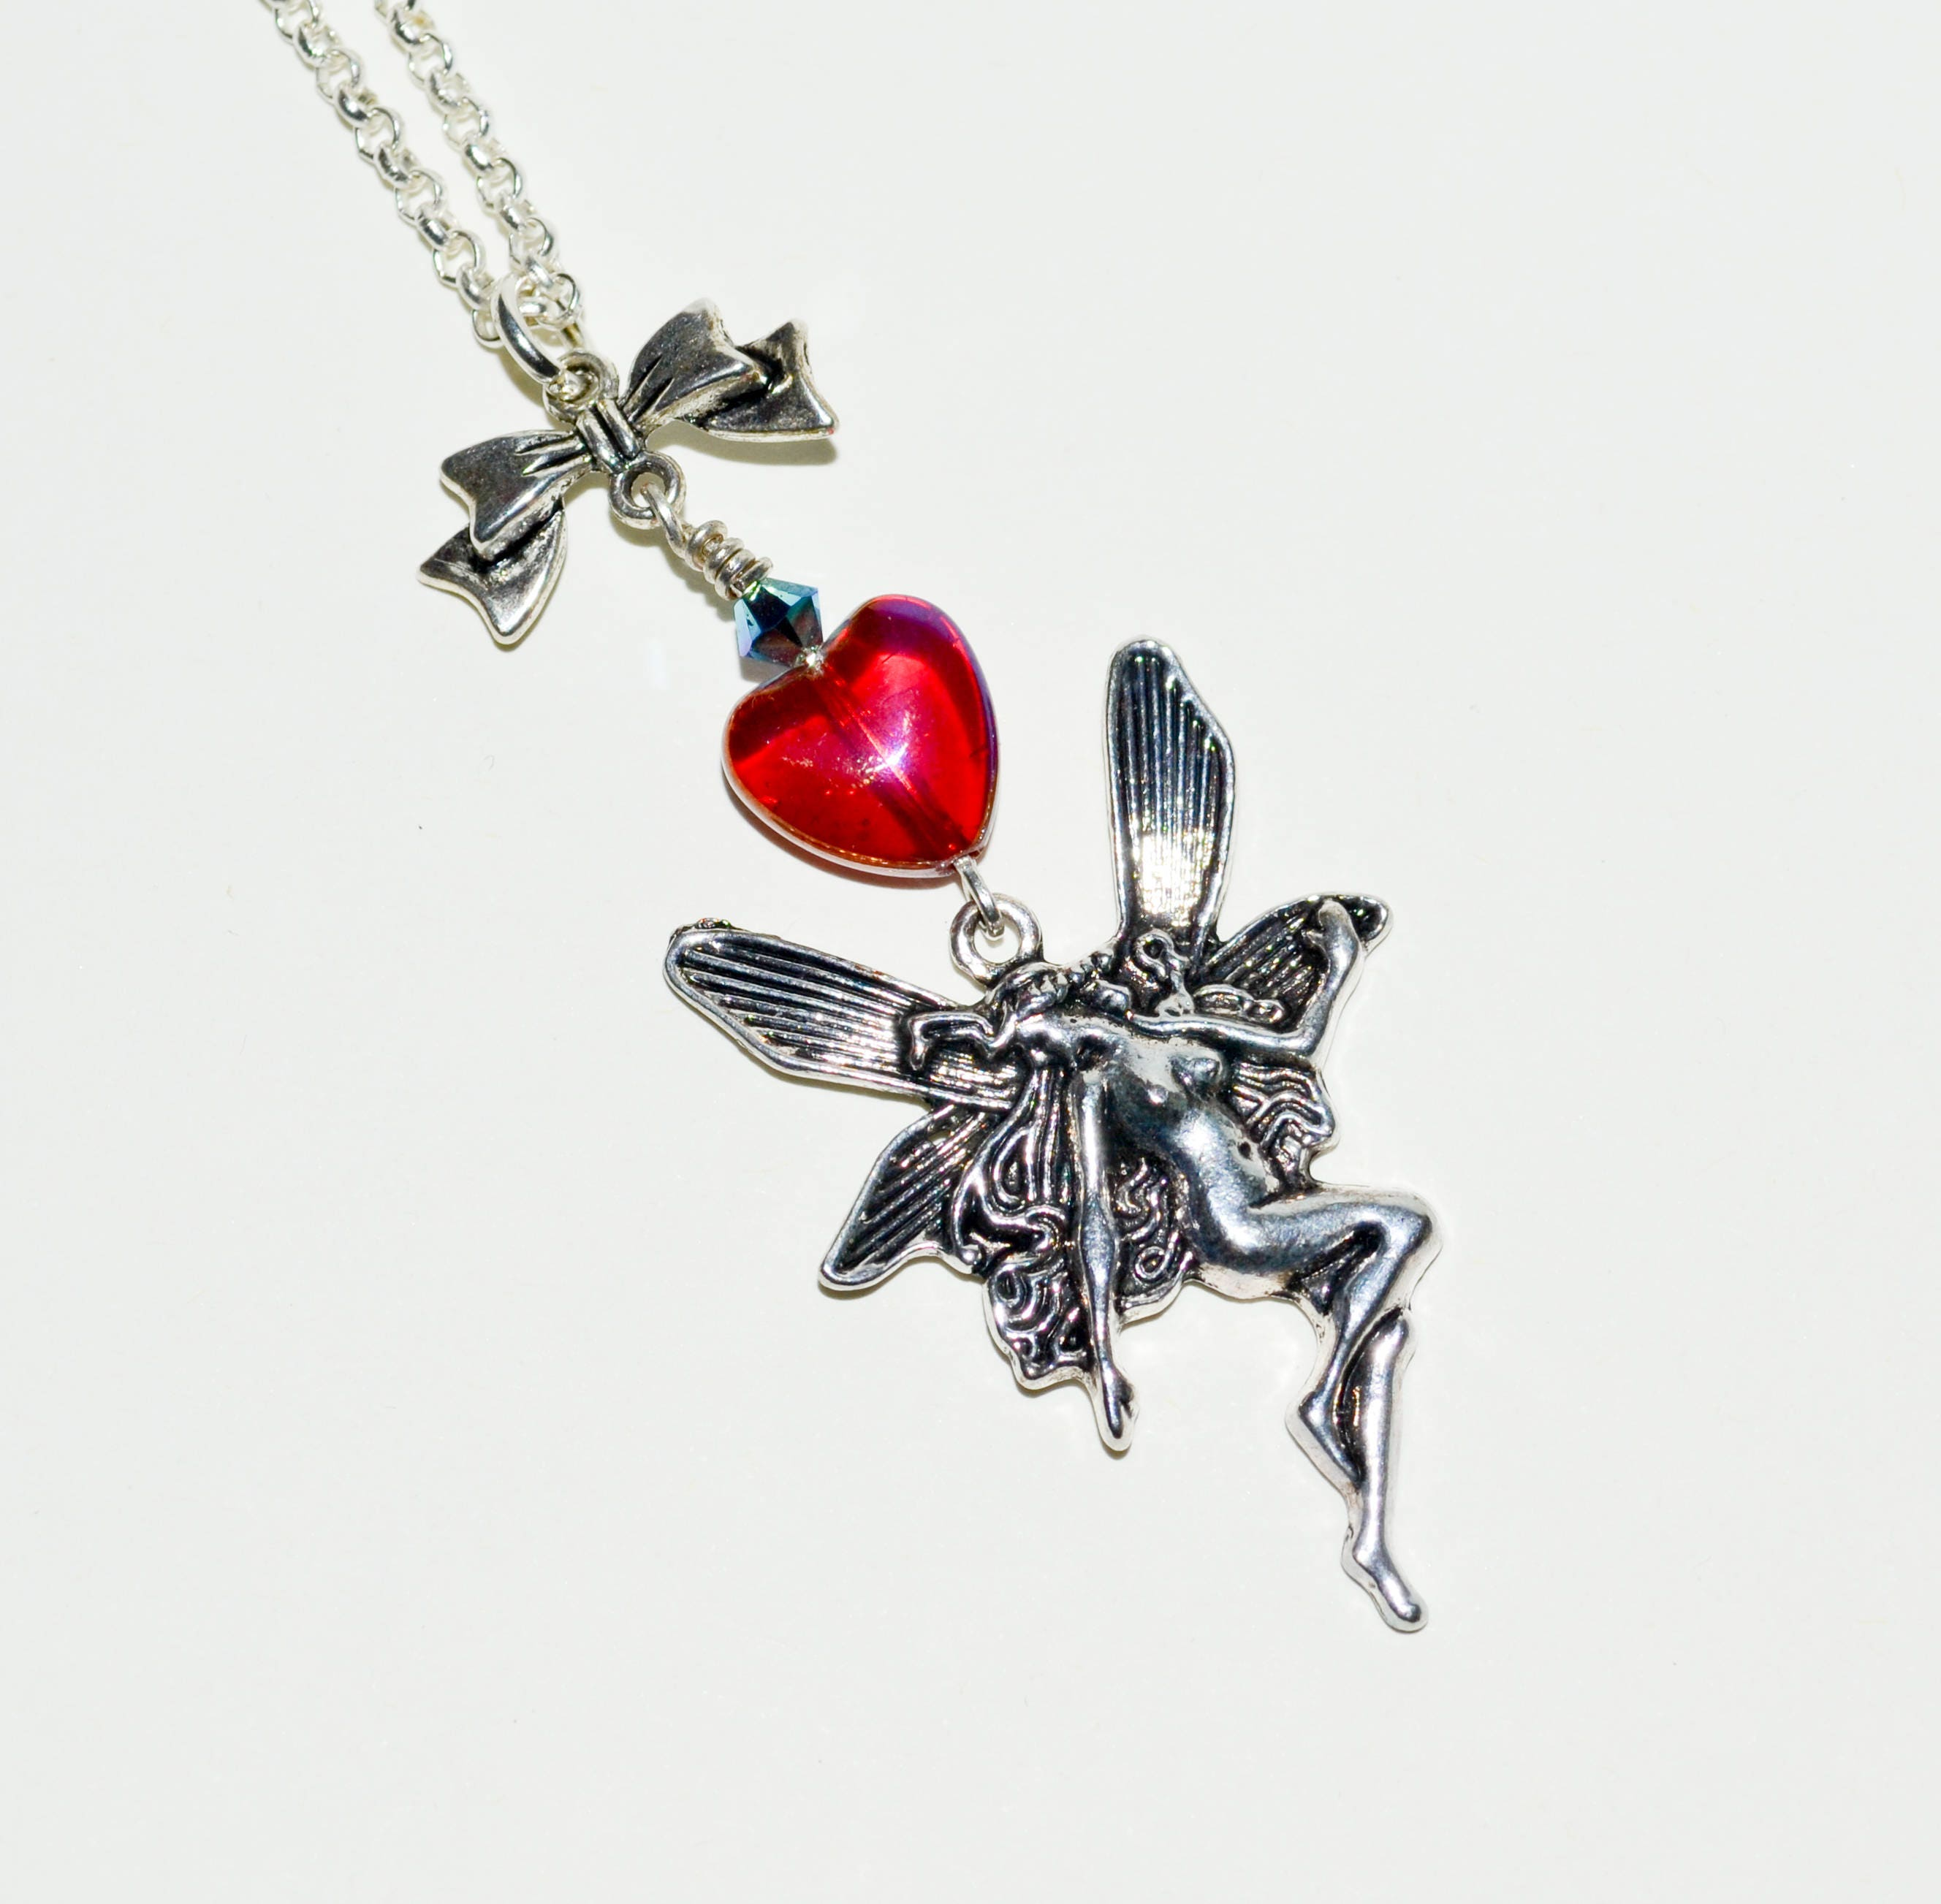 ip necklace fullbuster chain fairy silver gray com cross tail pendant with walmart cosplay